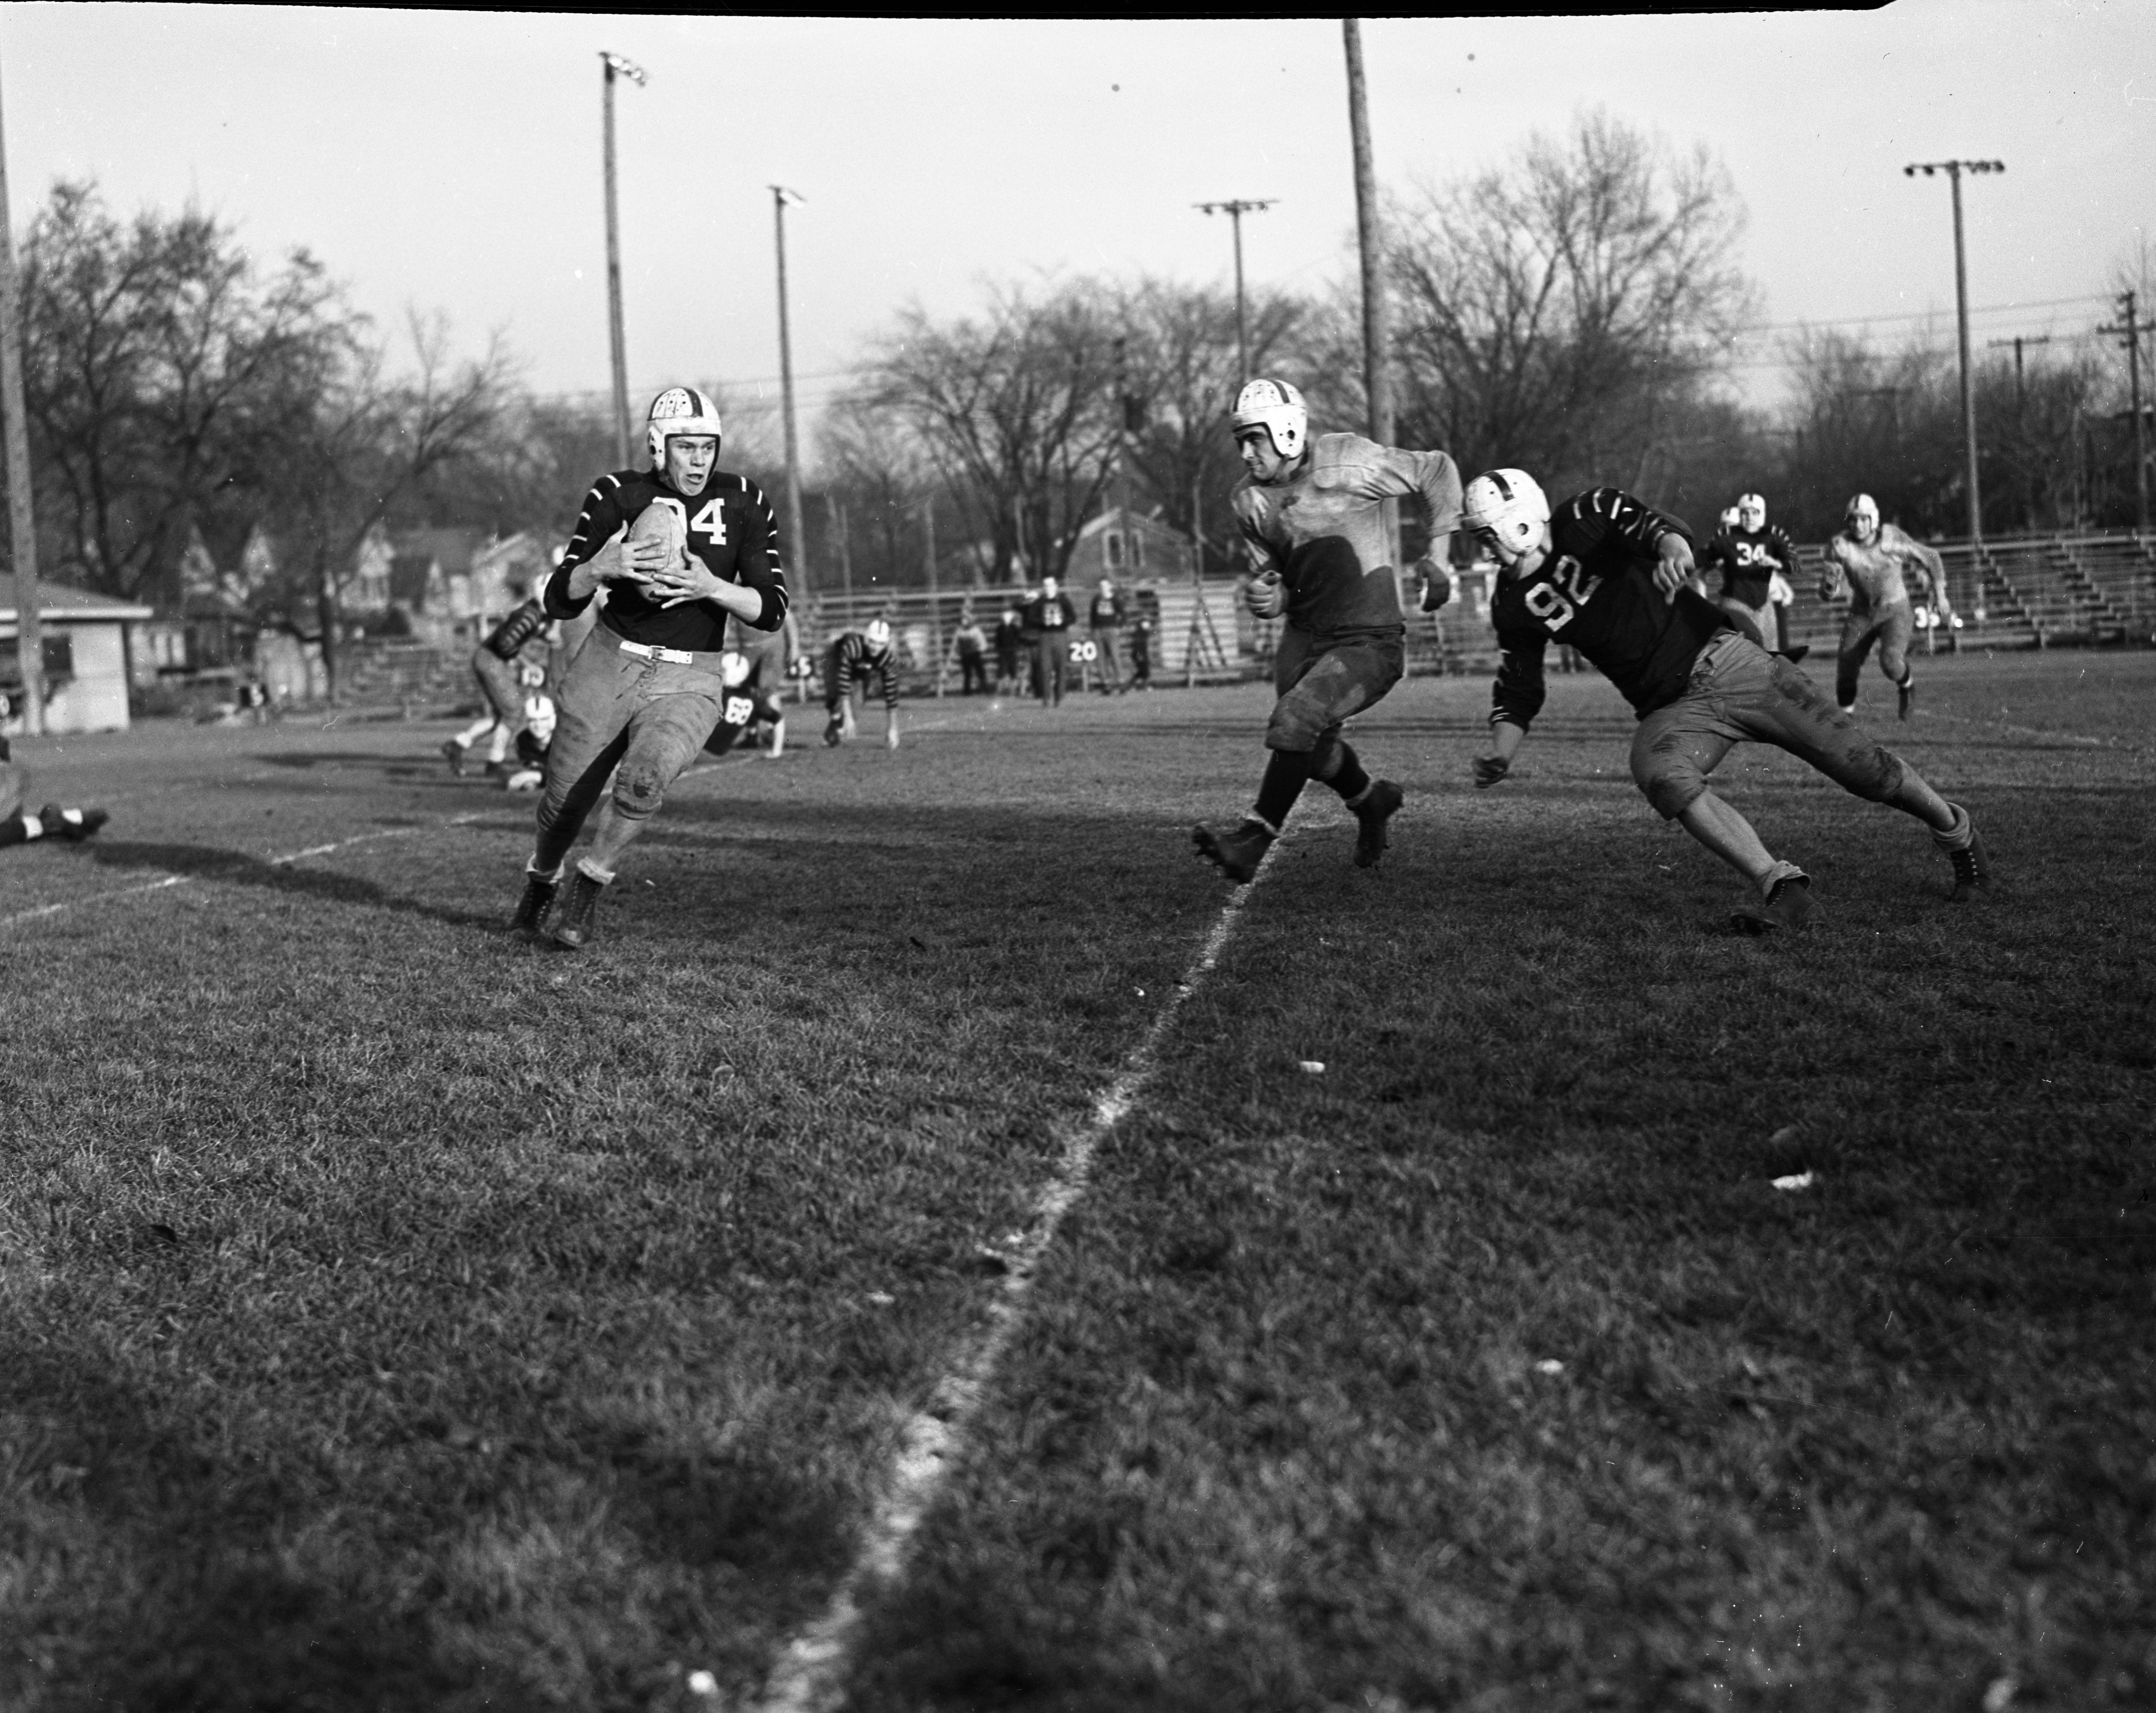 Ann Arbor High School Football, Team Divided in Home Room Game, November 1939 image